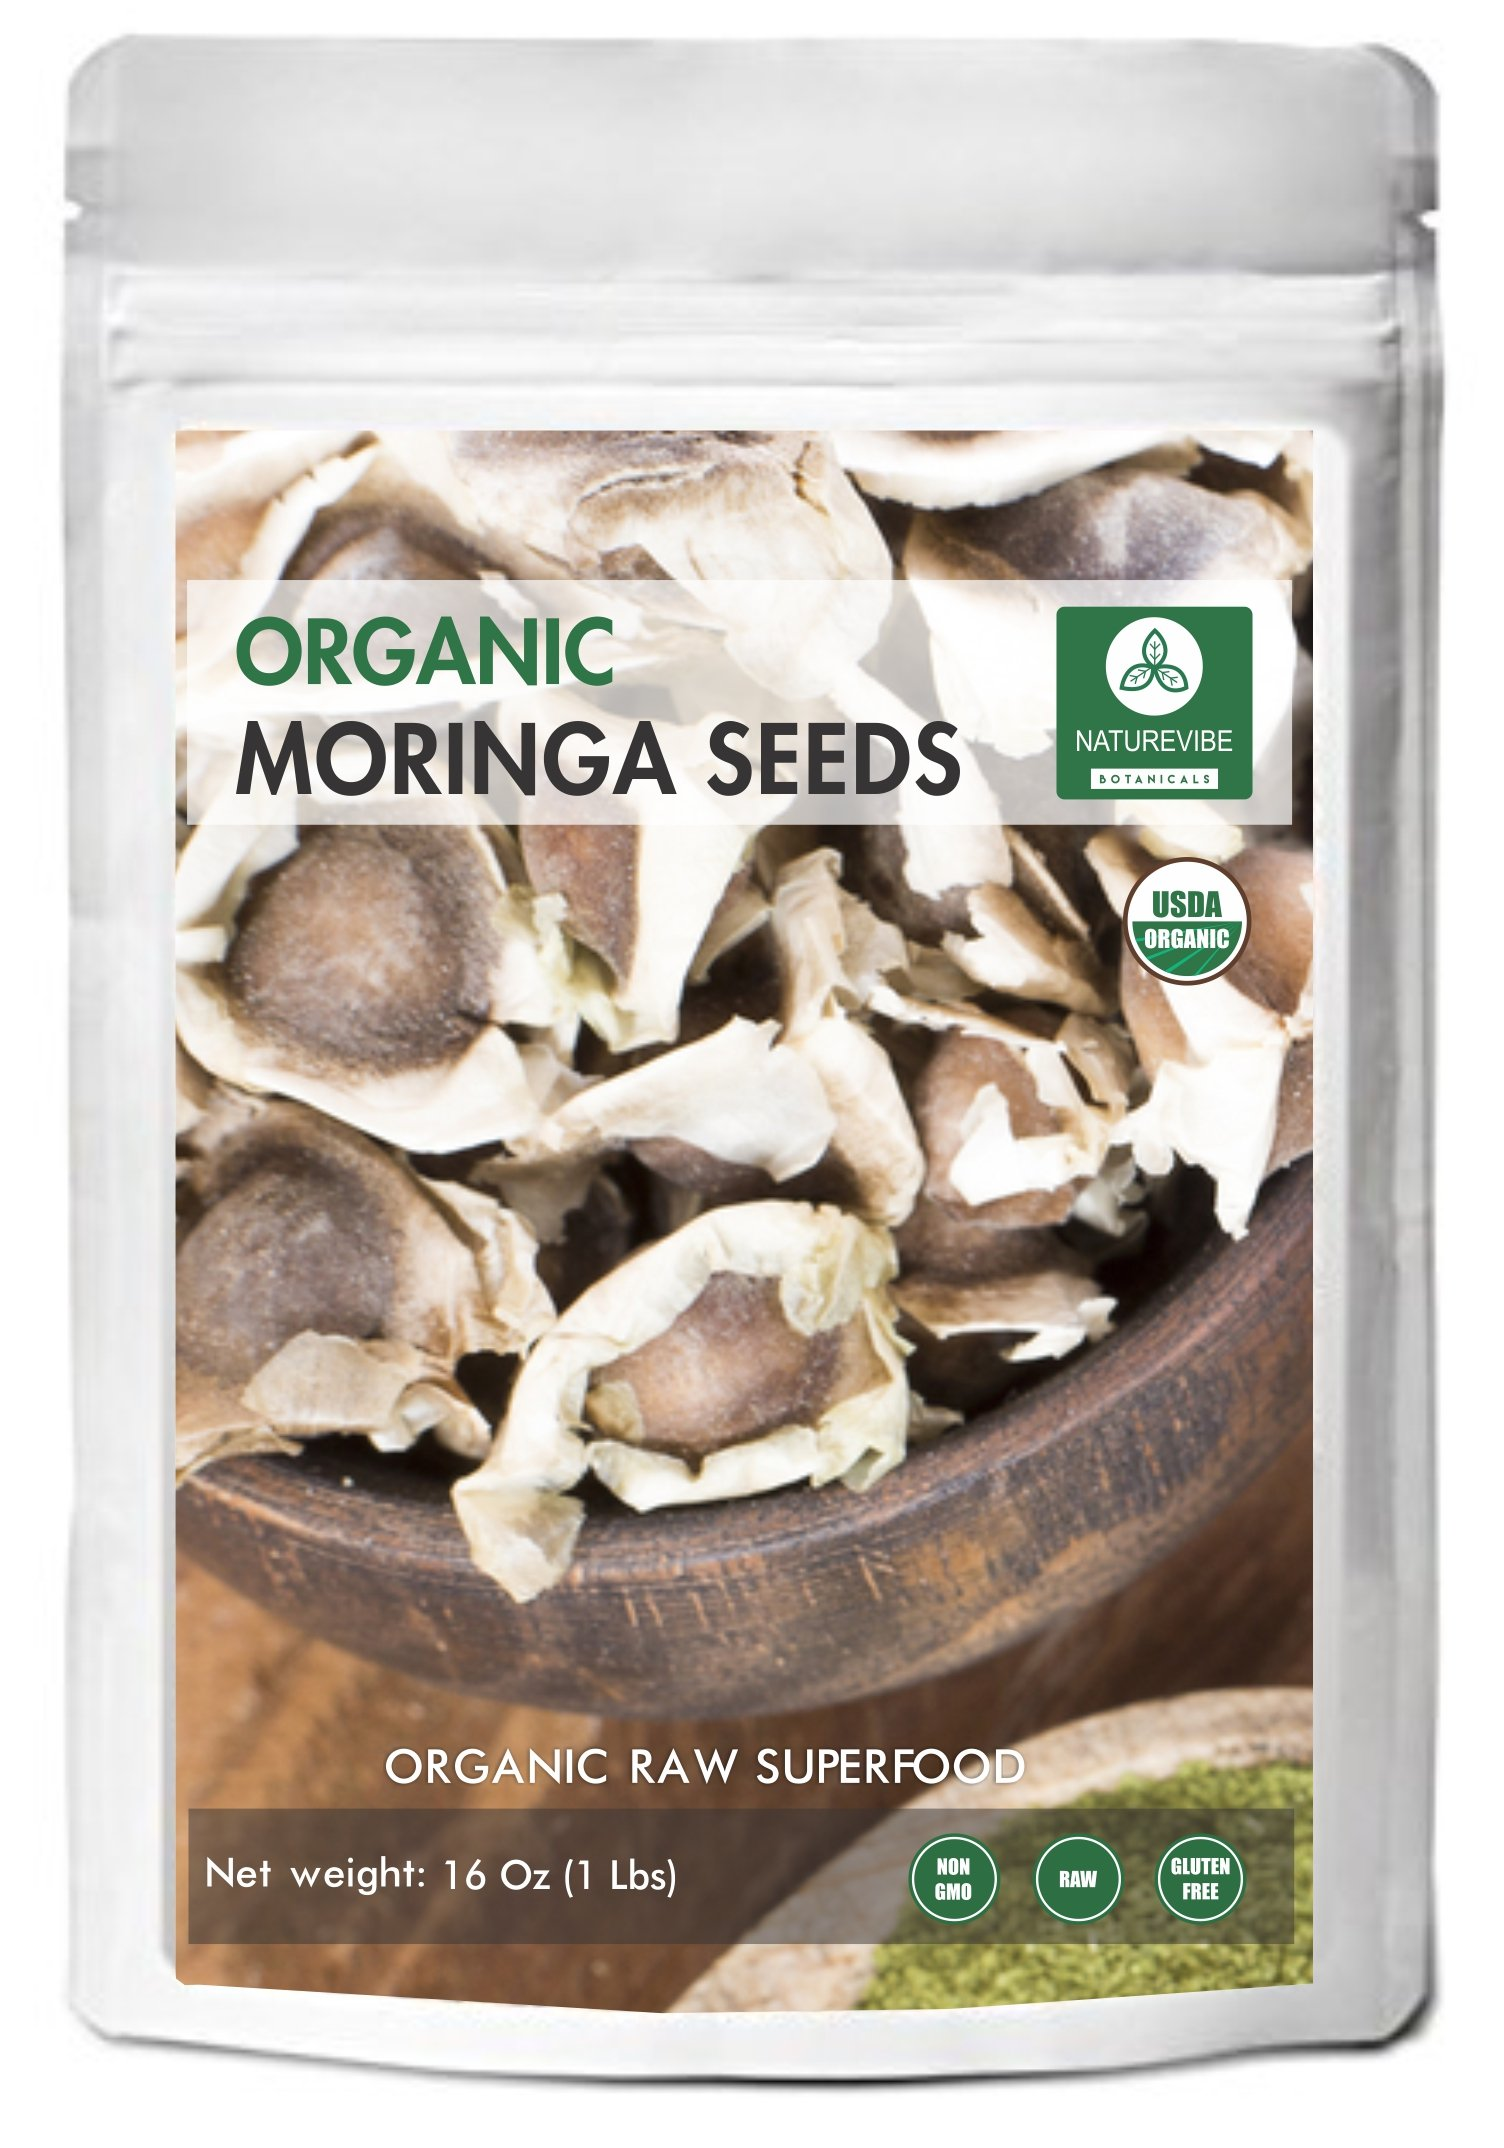 Approx 1500 Moringa Seeds (1lb), Dried Organic PKM1 Quality Herbal Dietary Supplement by Naturevibe Botanicals